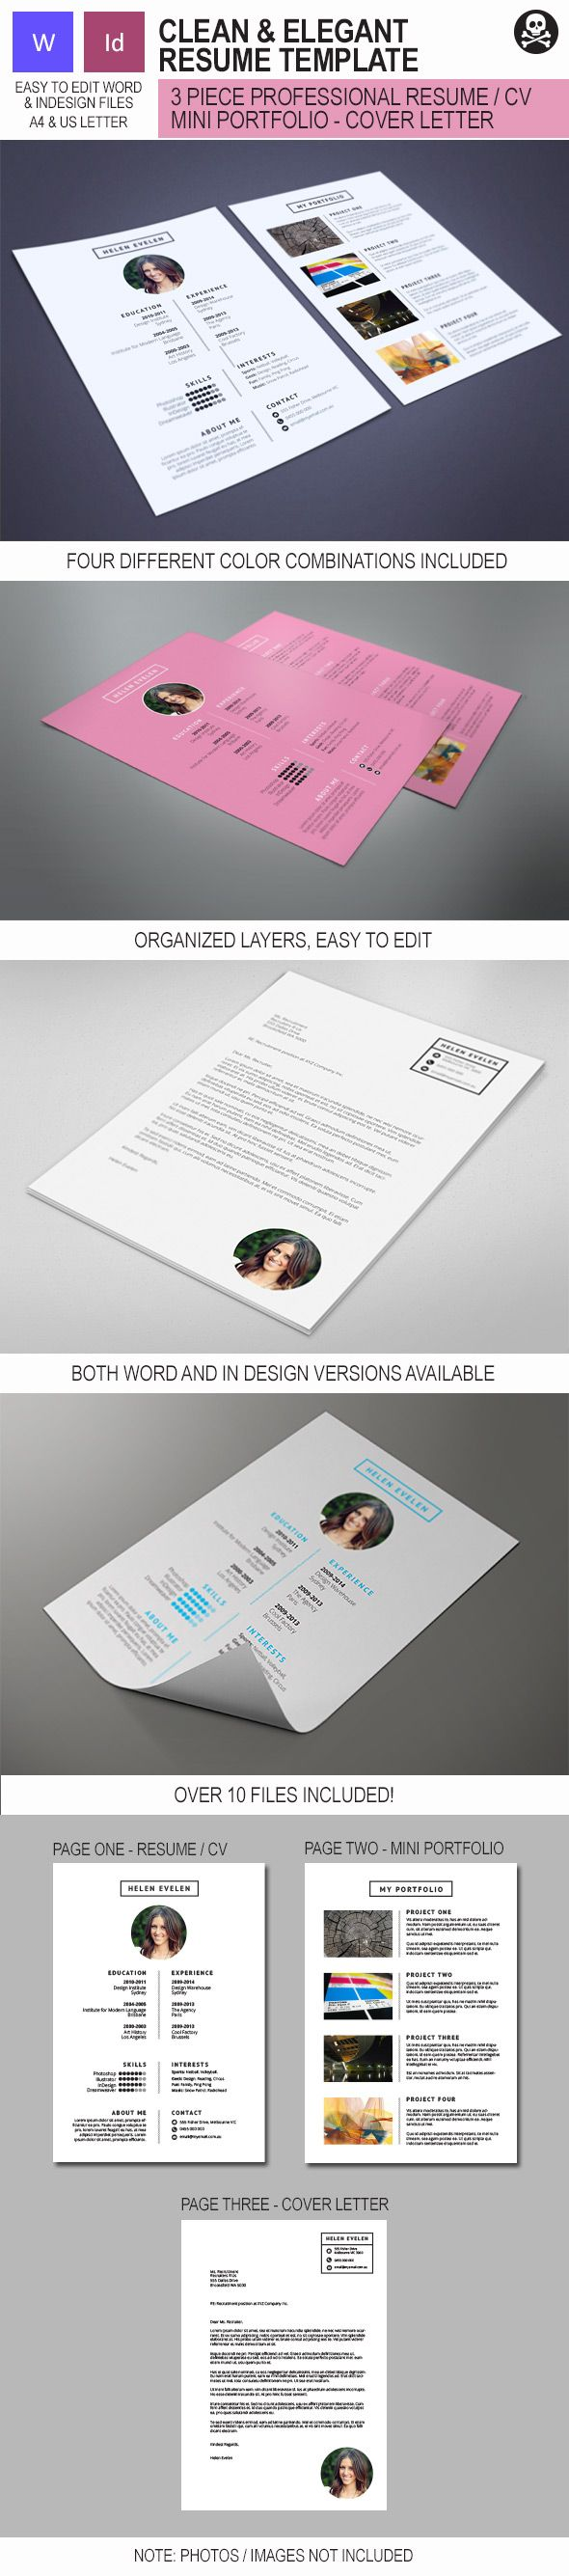 35 best p r a c a | C V images on Pinterest | Resume templates ...